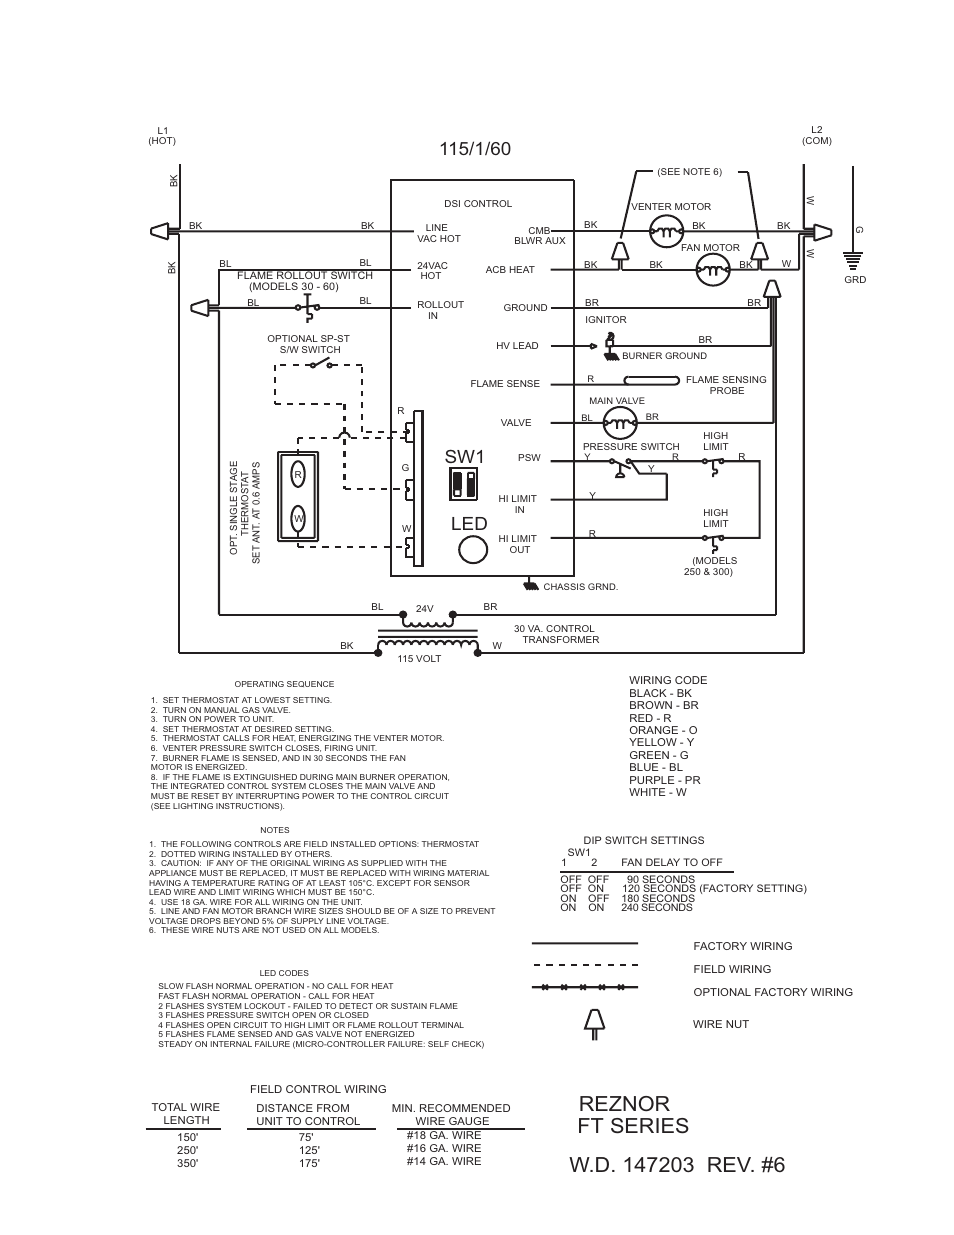 reznor ft unit installation manual page13?resized665%2C861 reznor heater wiring schematic efcaviation com unit heater wiring diagram at bayanpartner.co